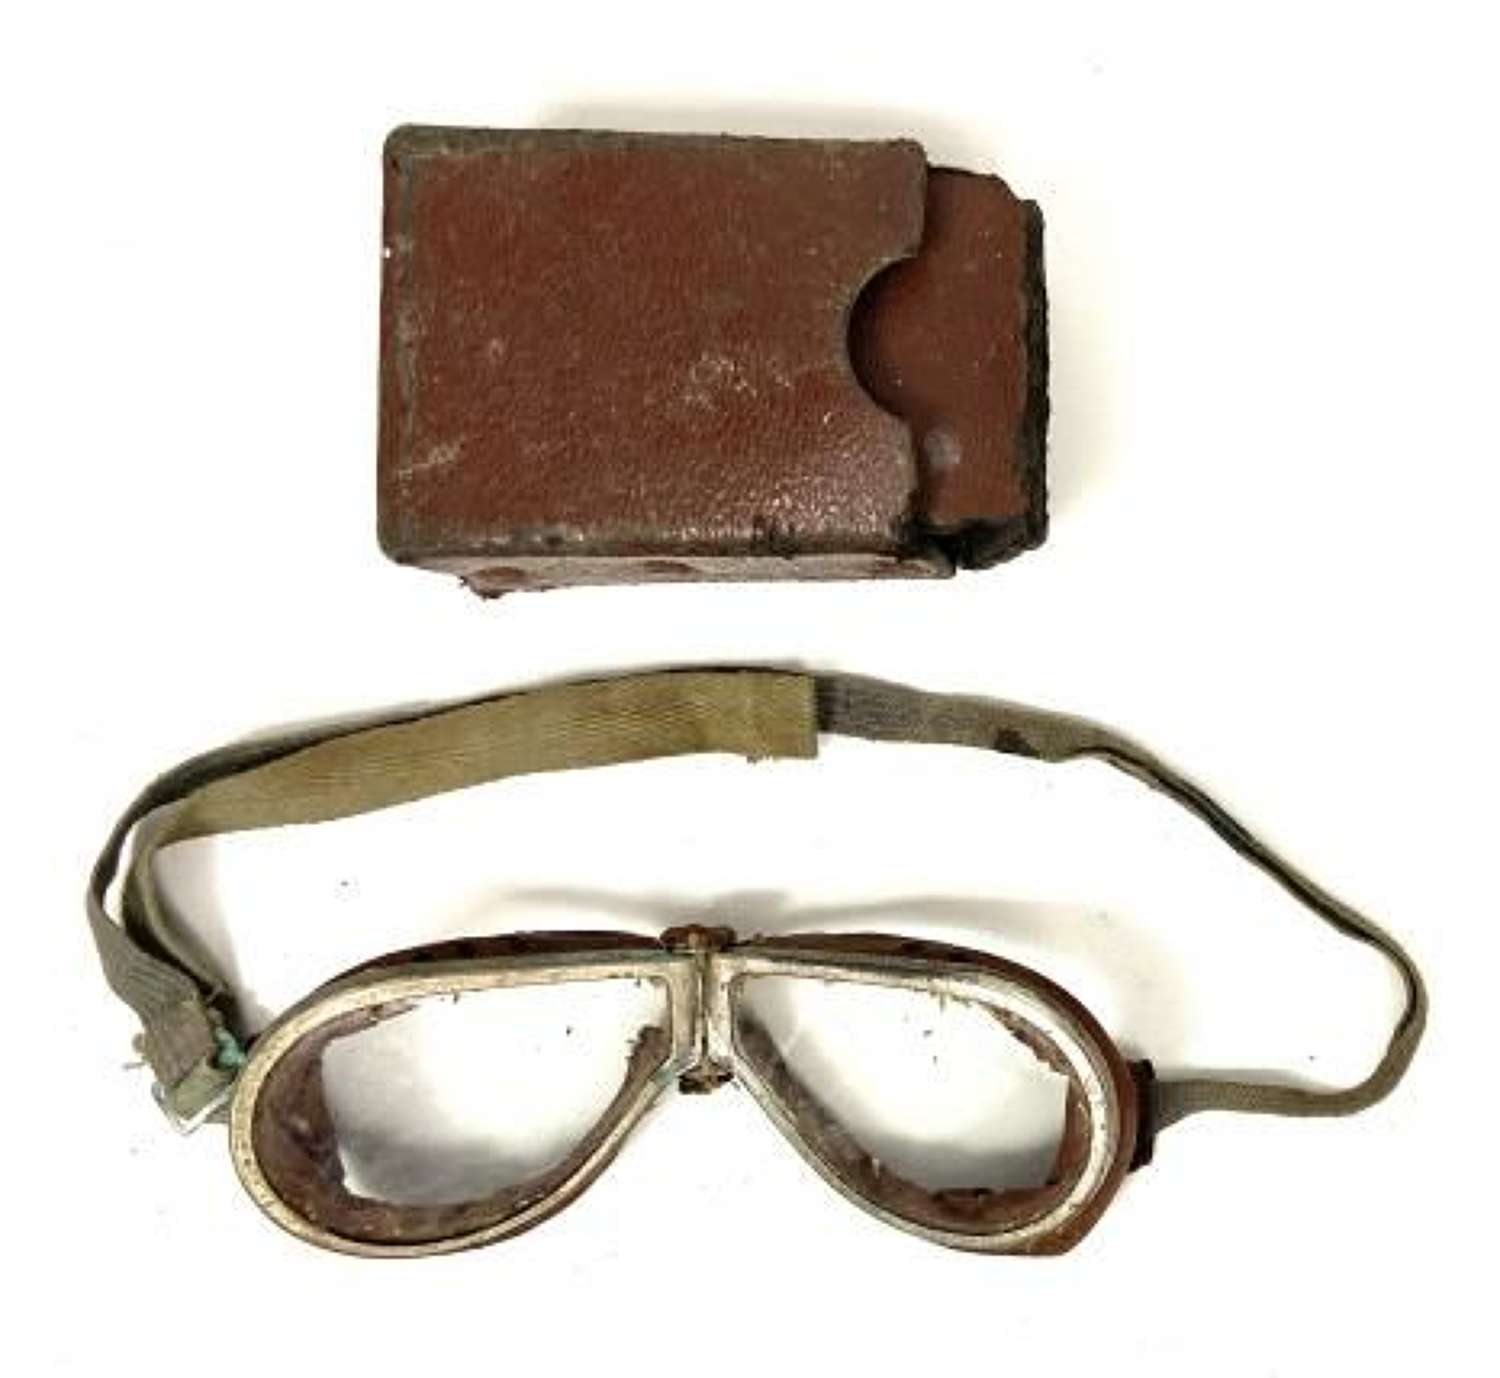 Original WW2 British Army MT Goggles and Case - Clear Lenses